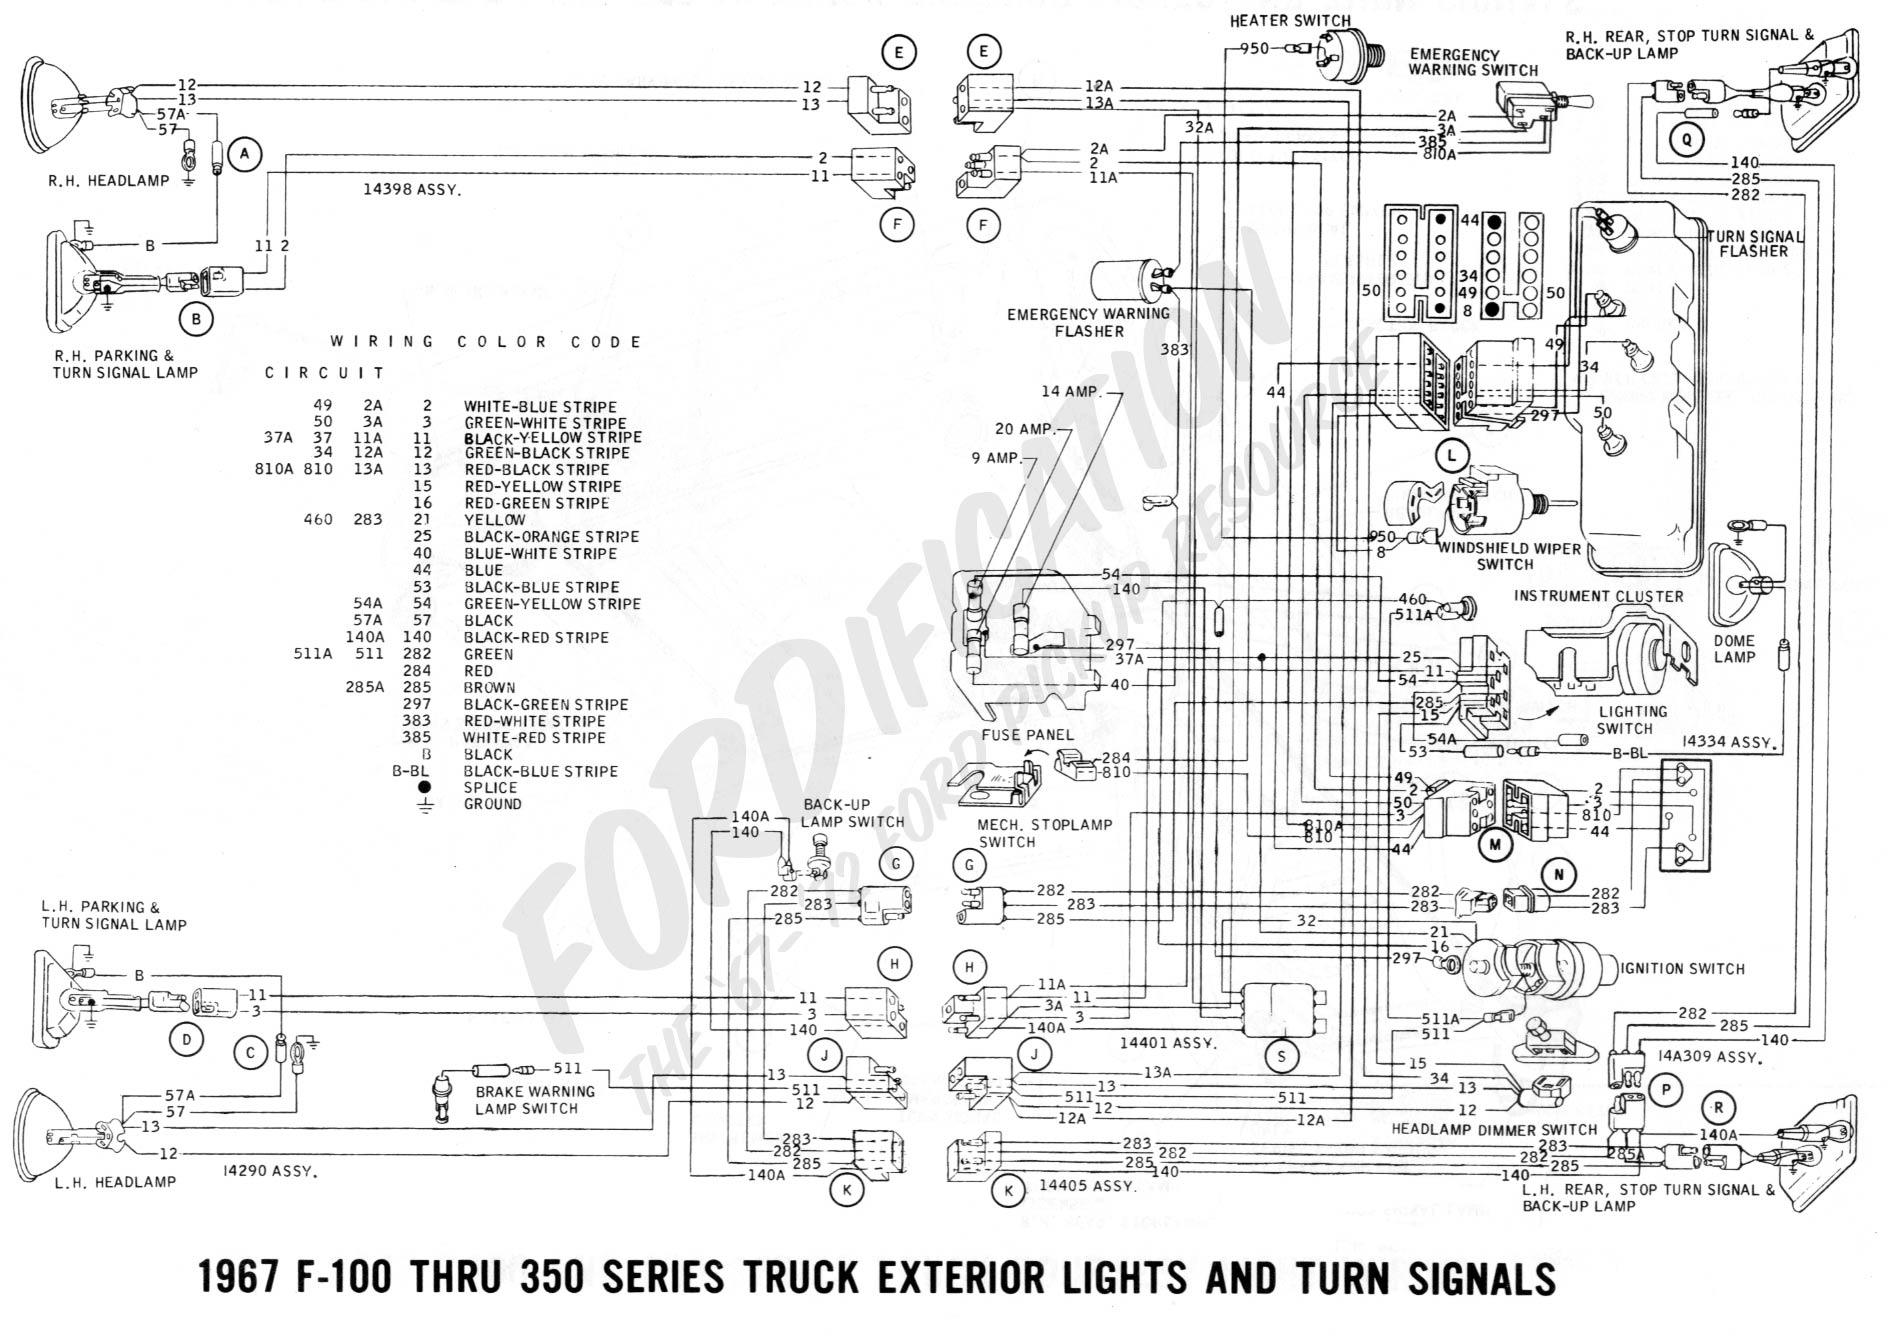 1988 Ford F250 Radio Wiring Diagram from www.fordification.com